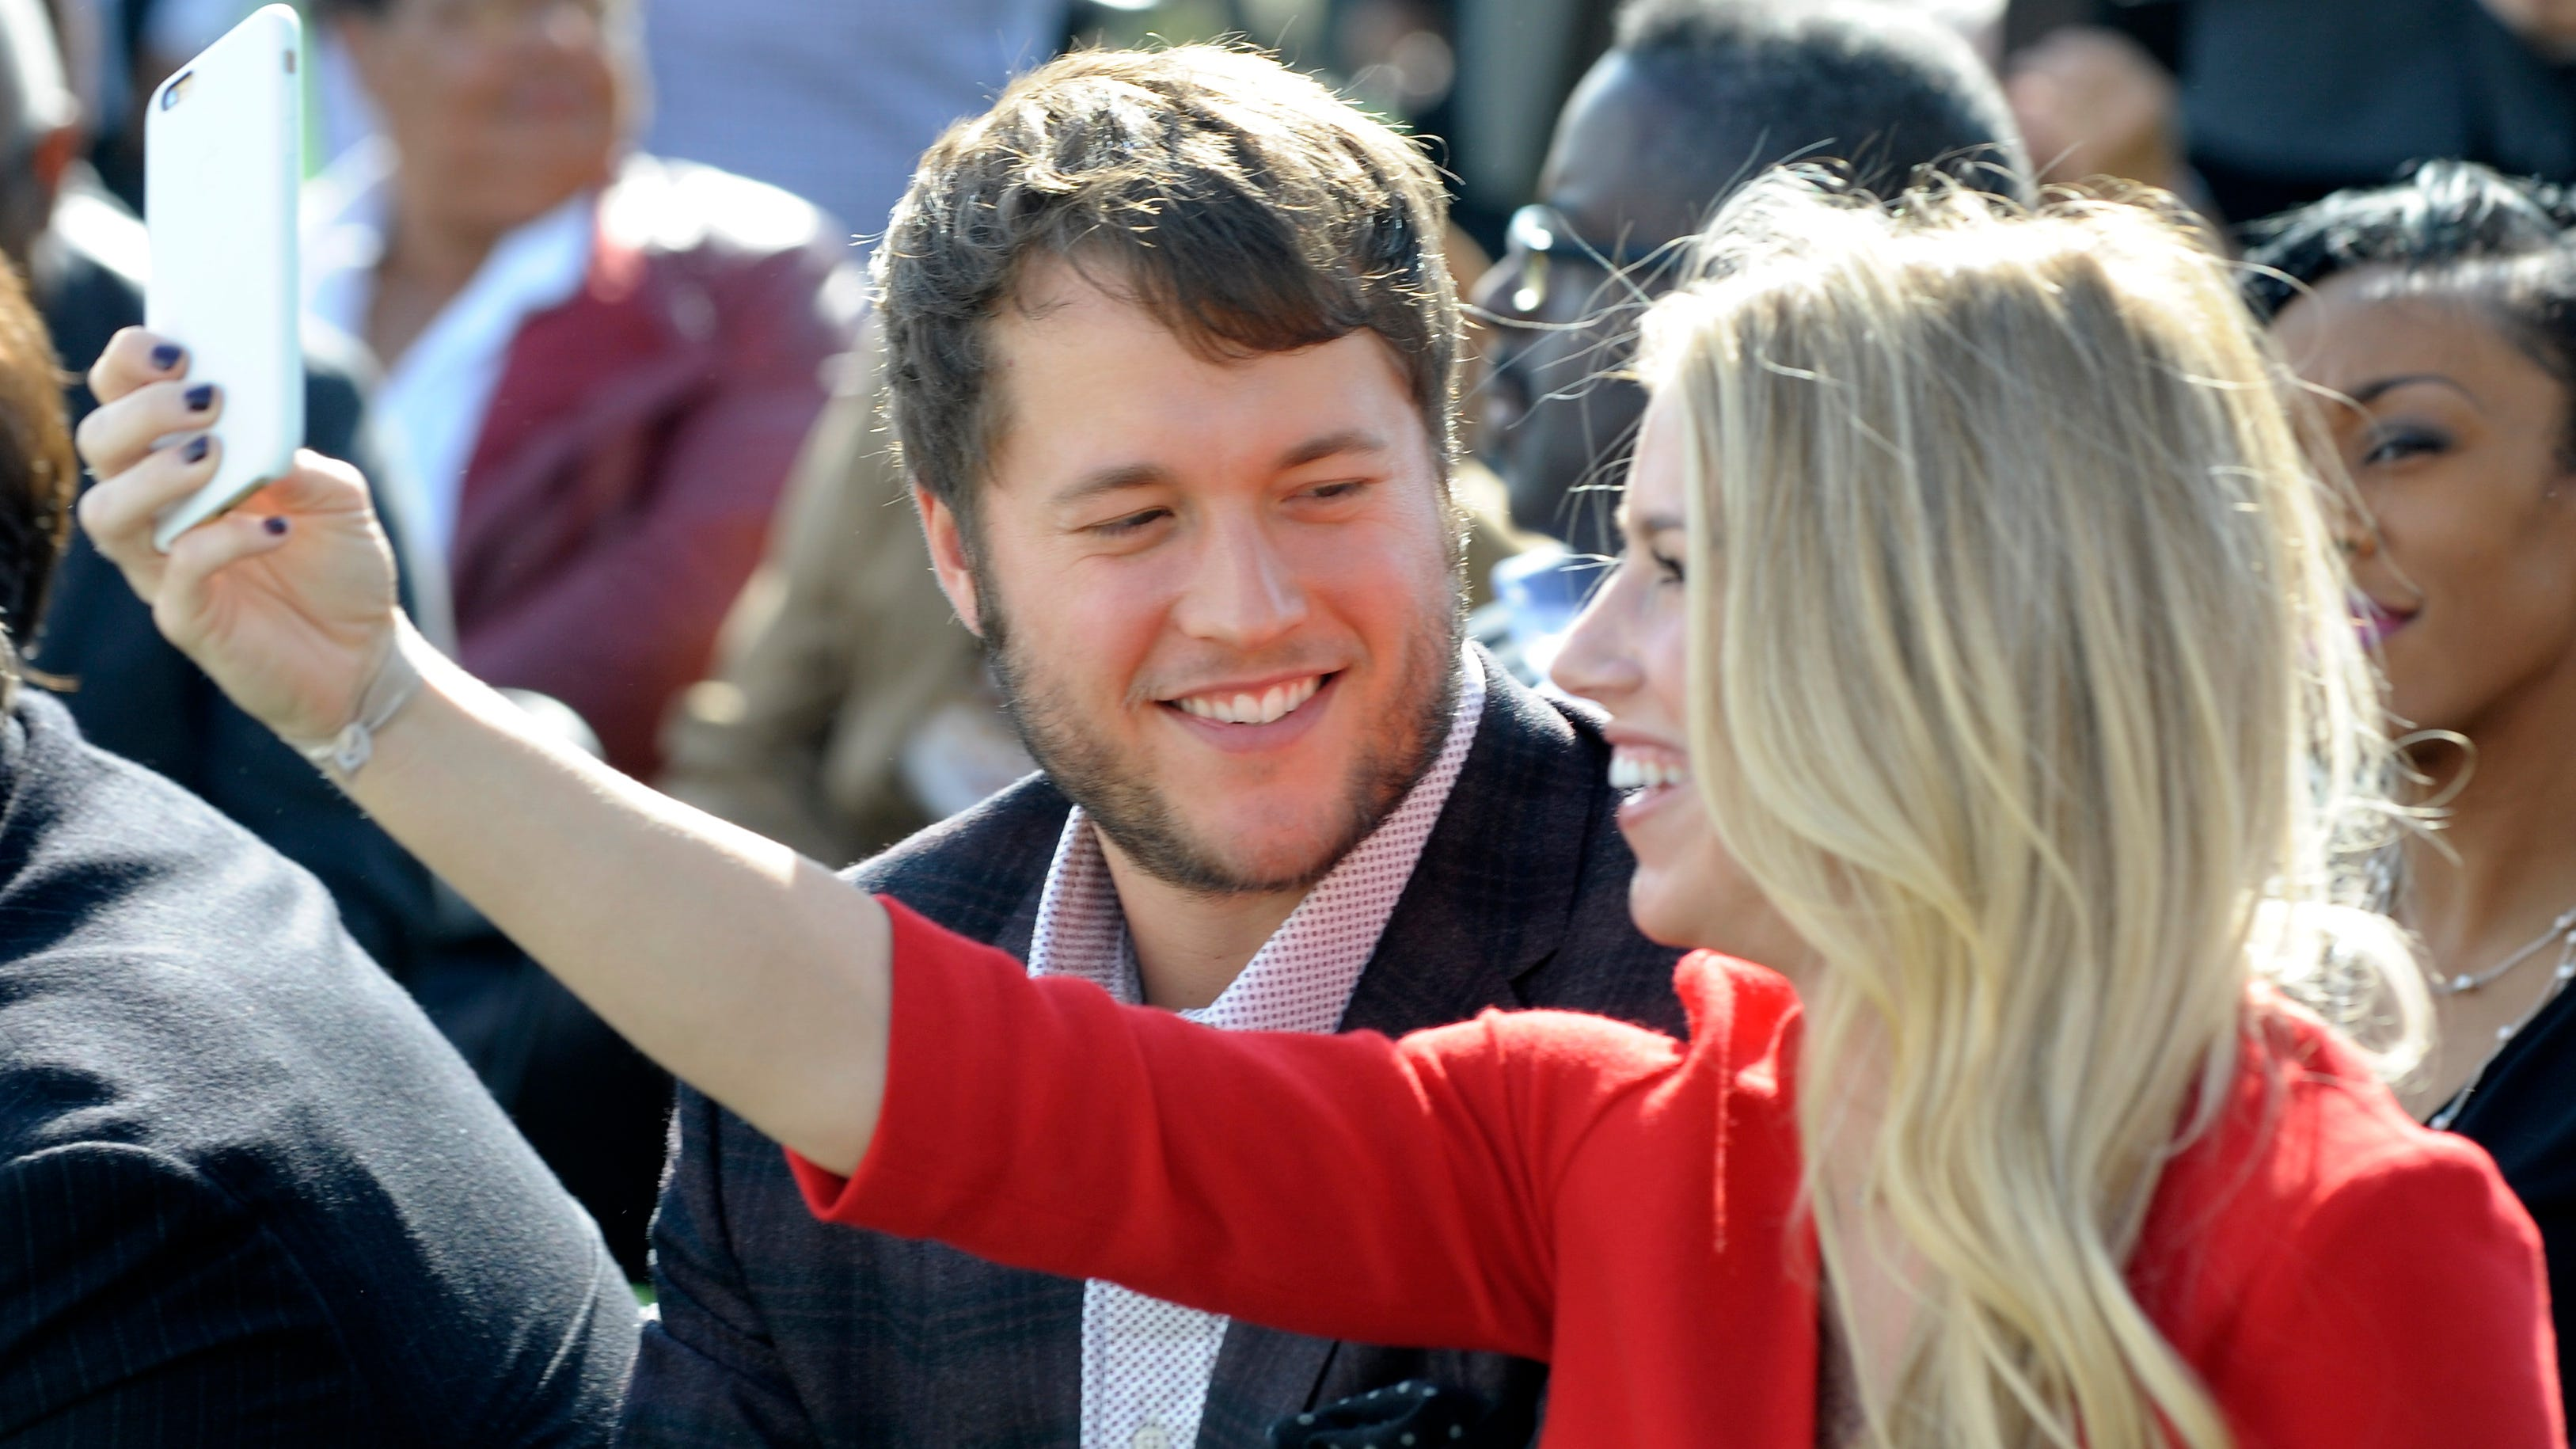 Report: Week after wife's brain surgery, Lions QB Matthew Stafford returns to work